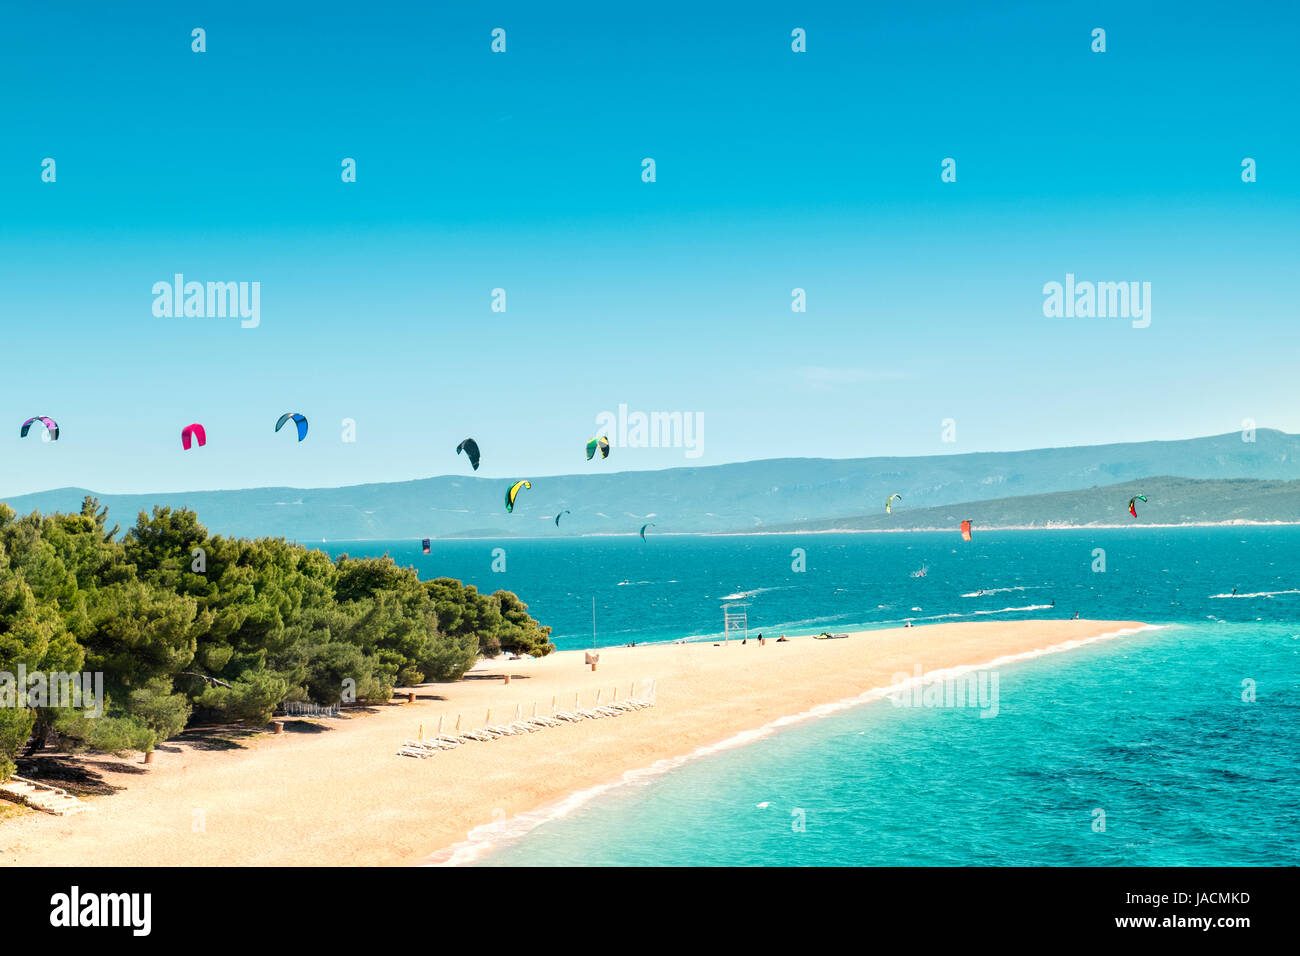 View of the landmark Golden Horn at the island Brac in Croatia. Kitesurfer and windsurfer in the background enliven - Stock Image